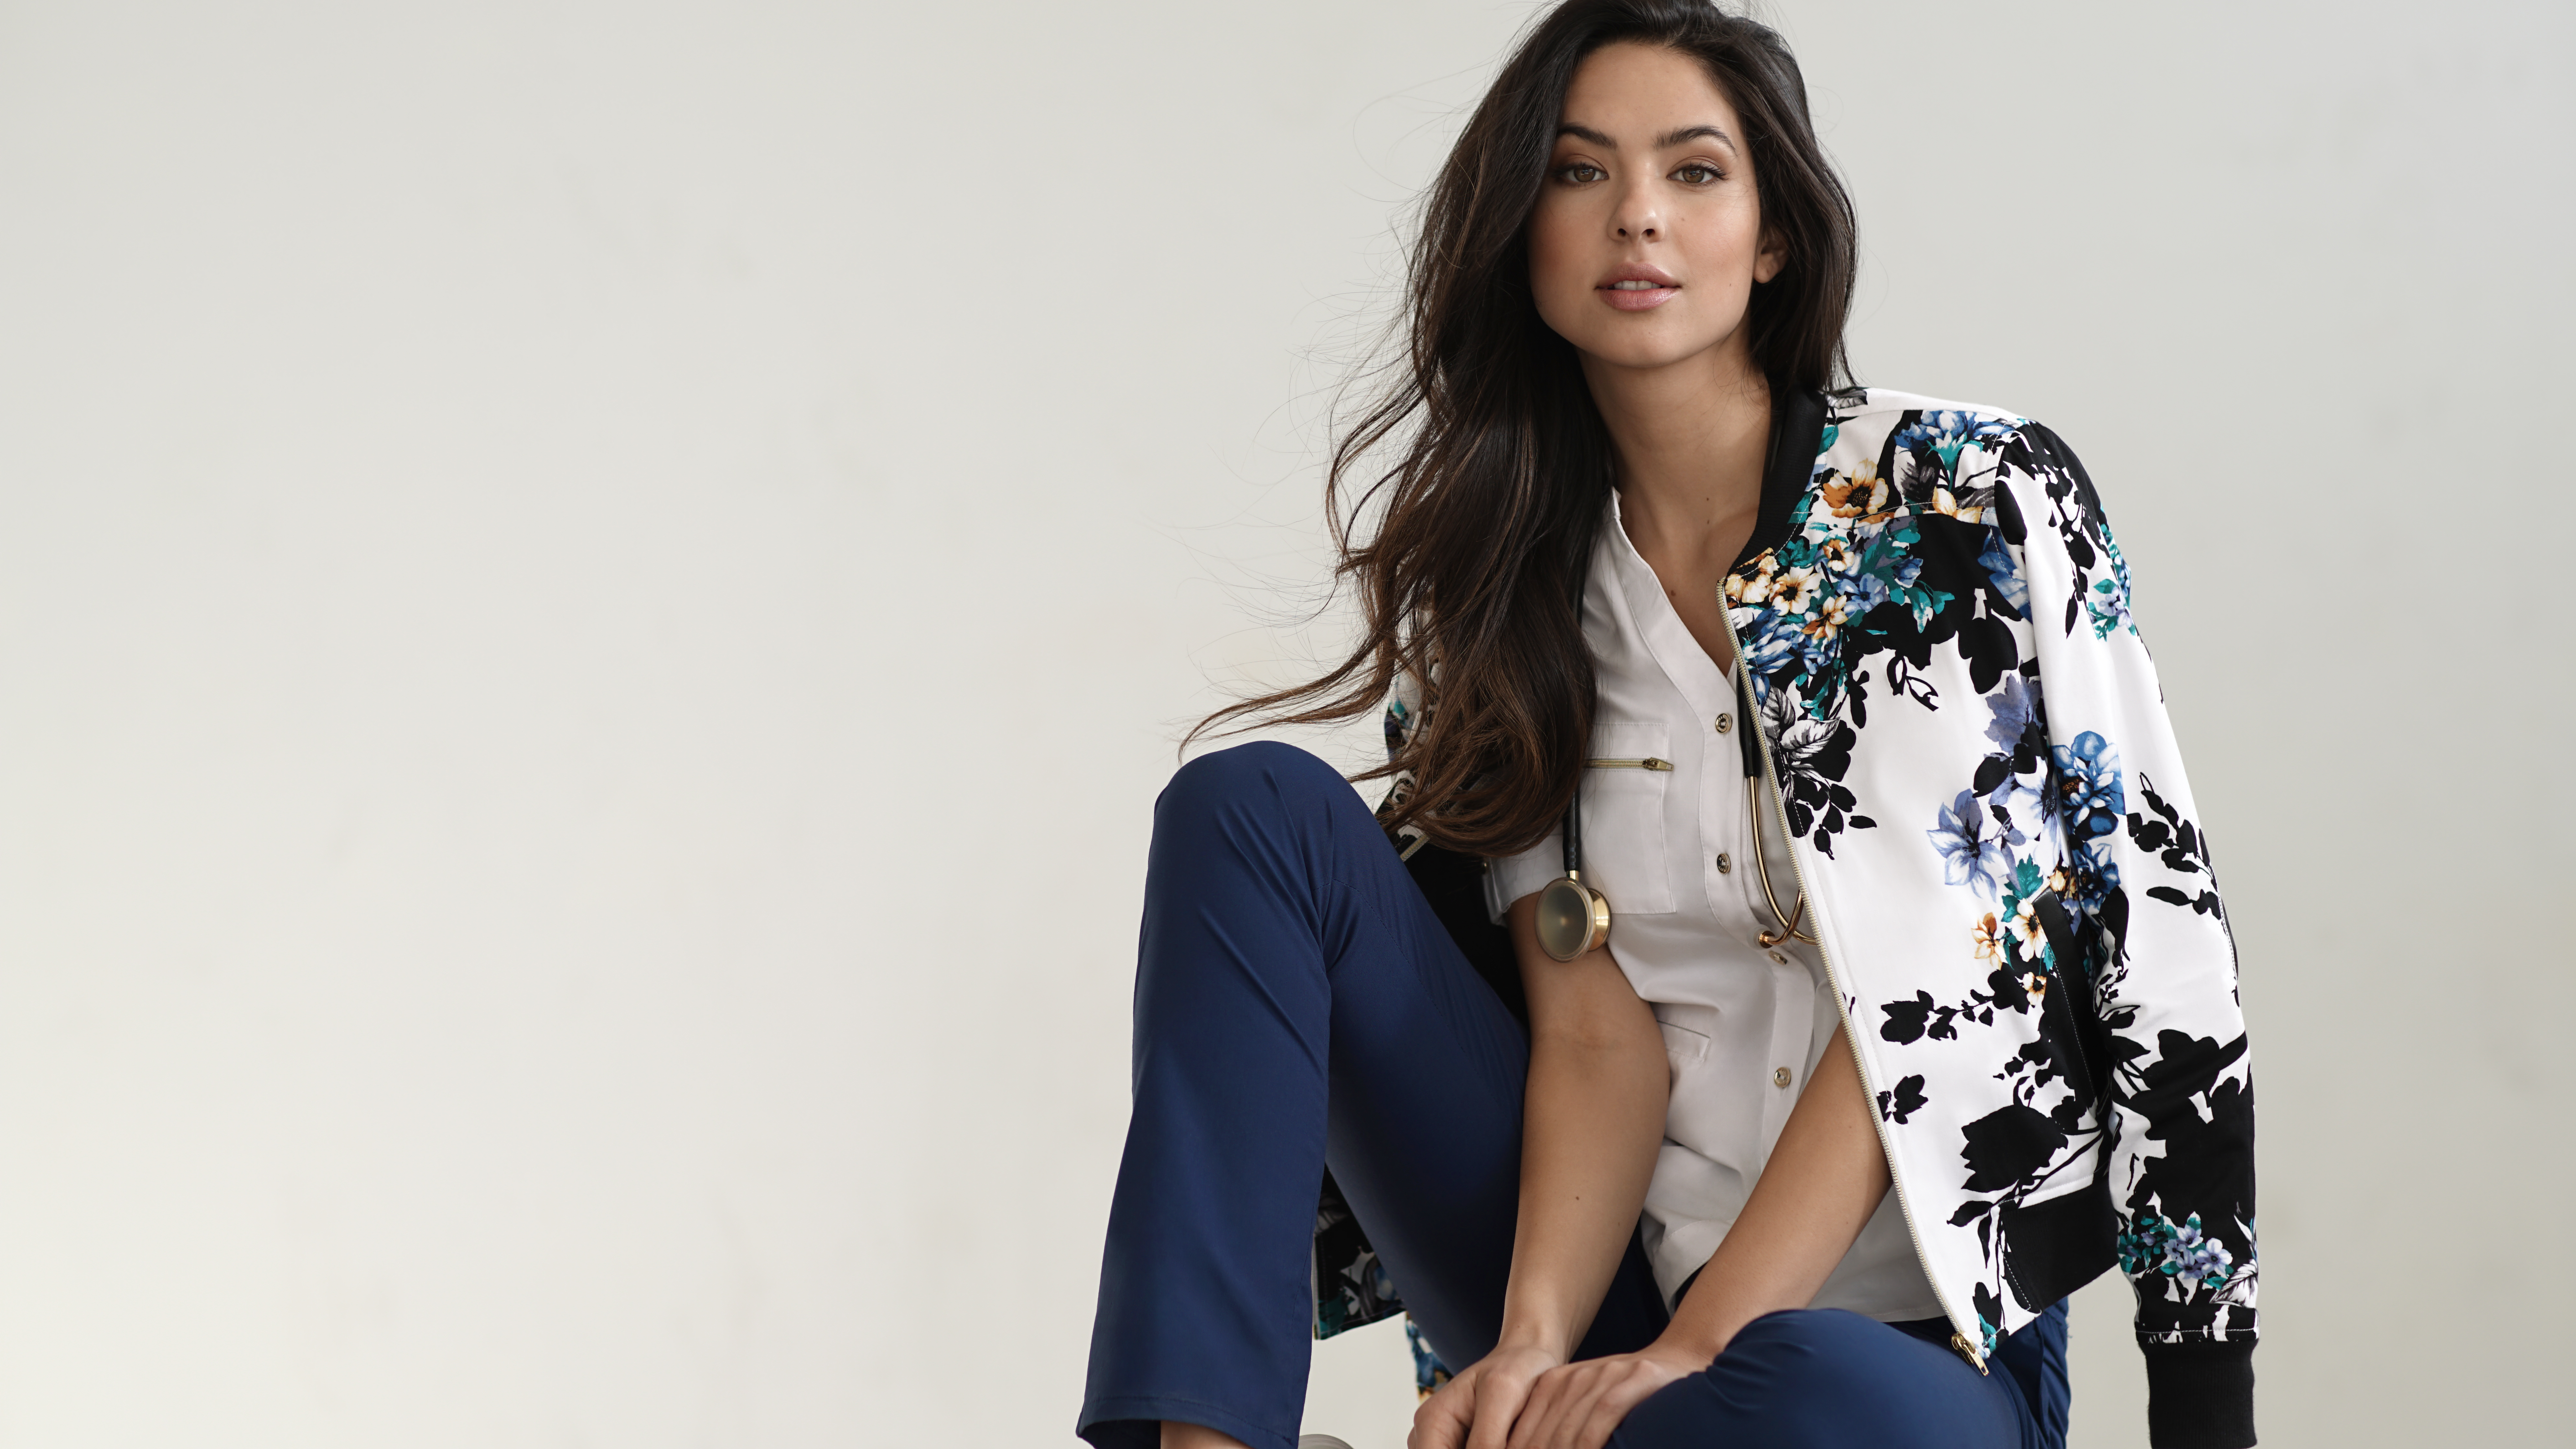 aa7689286c8 And we know we're not in the medical profession, but we still want the  Jaanuu Bomber Jacket ($69)!